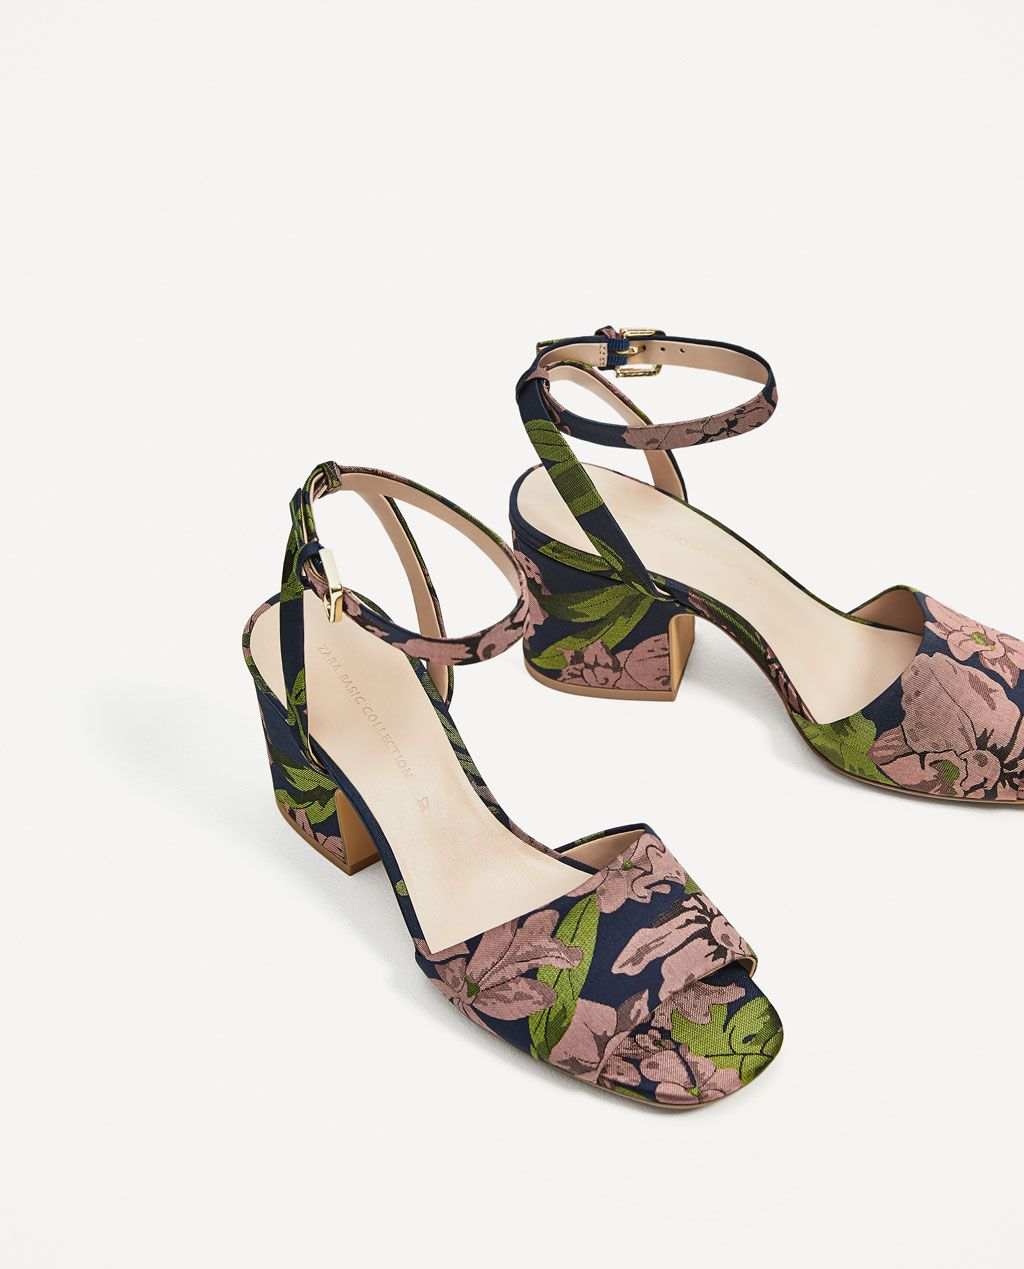 41d3c3a6848 EMBROIDERED HIGH HEEL SANDALS-Heeled sandals-SHOES-WOMAN